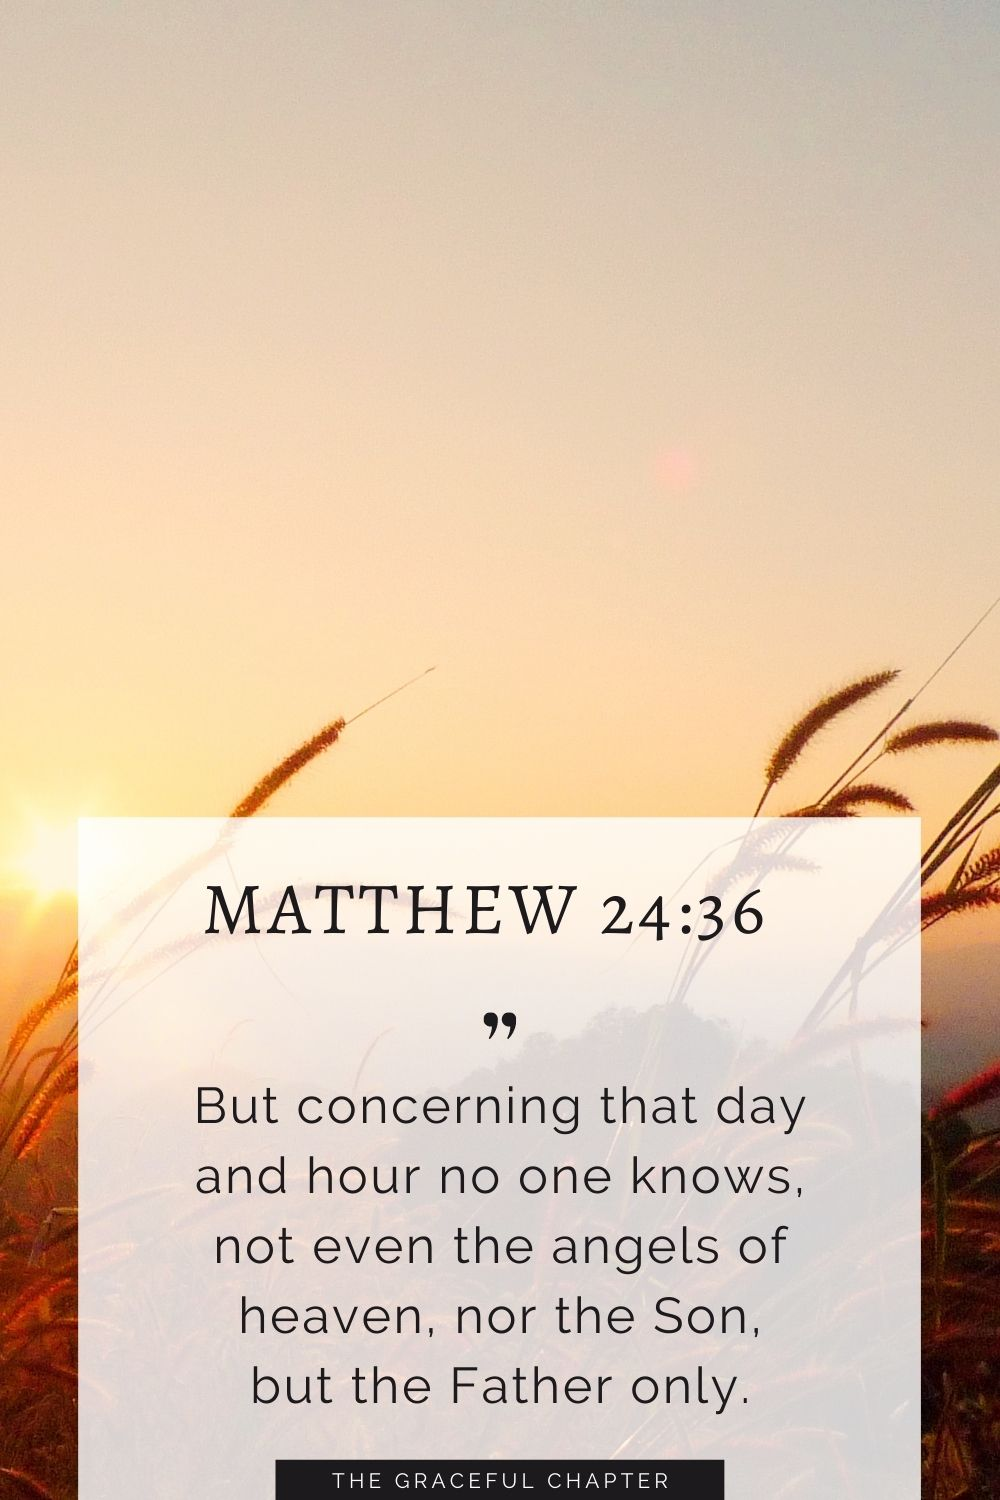 But concerning that day and hour no one knows, not even the angels of heaven, nor the Son, but the Father onlyBut concerning that day and hour no one knows, not even the angels of heaven, nor the Son, but the Father only. Matthew 24:36